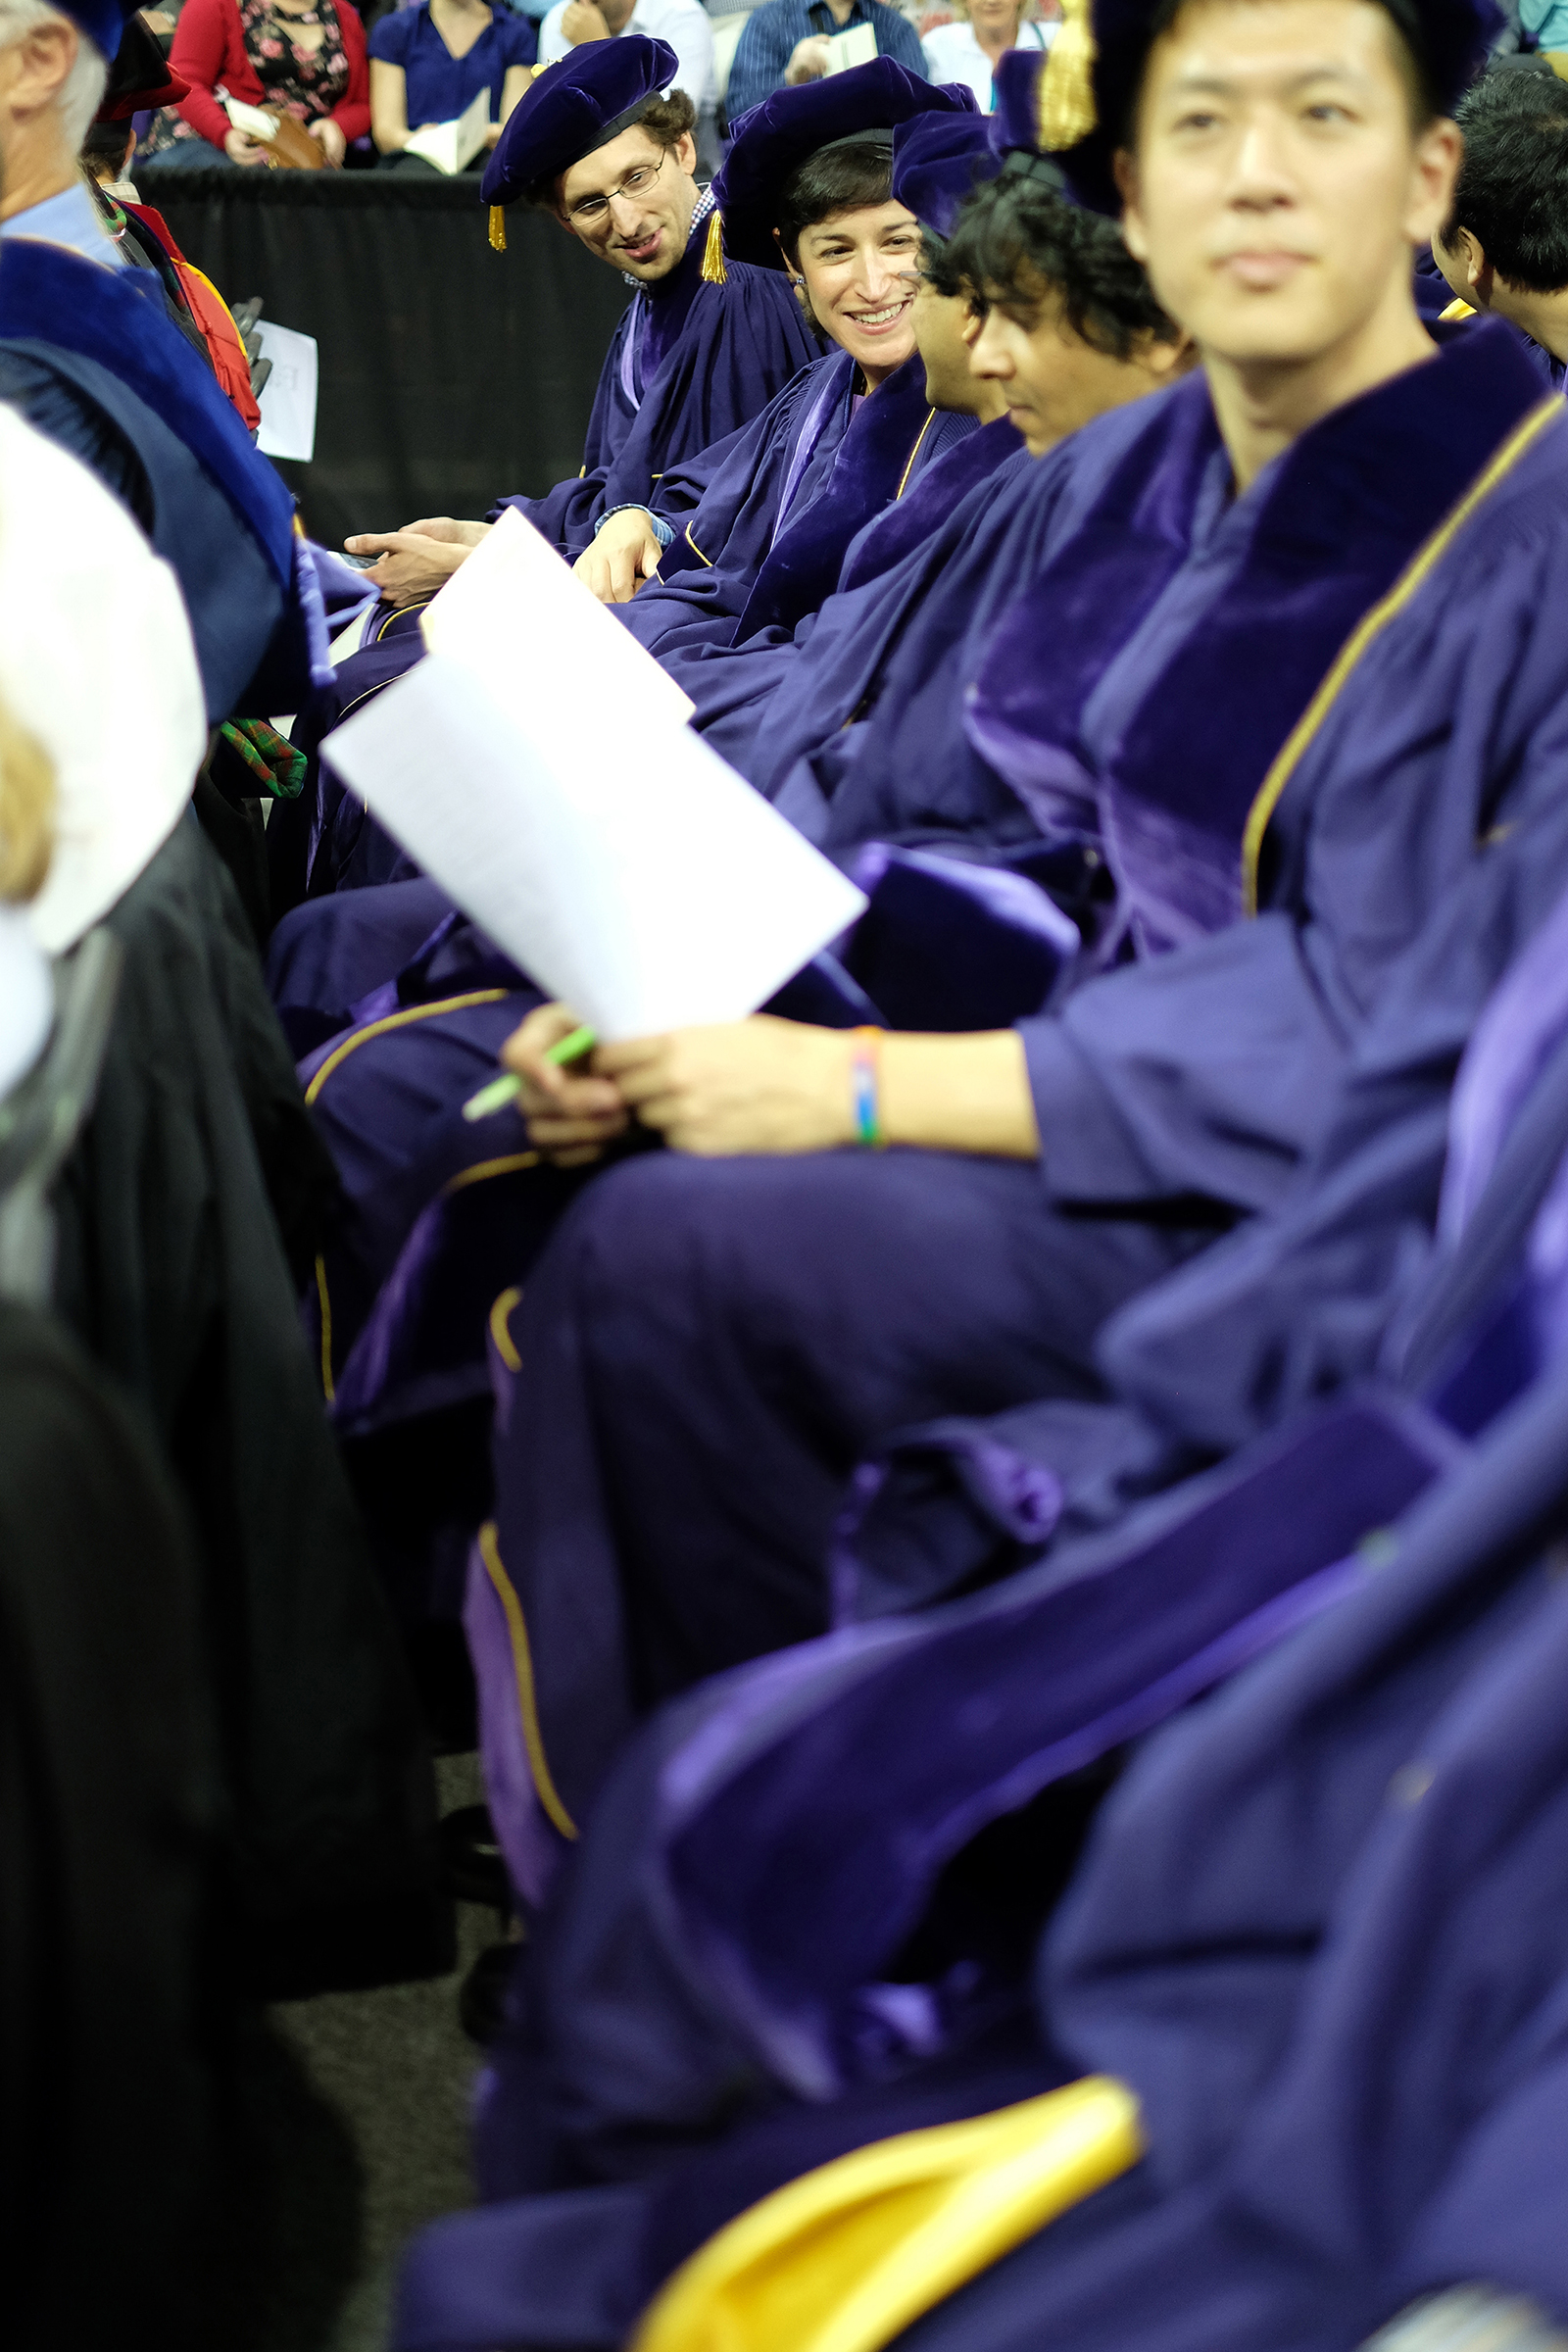 New graduates at the arena